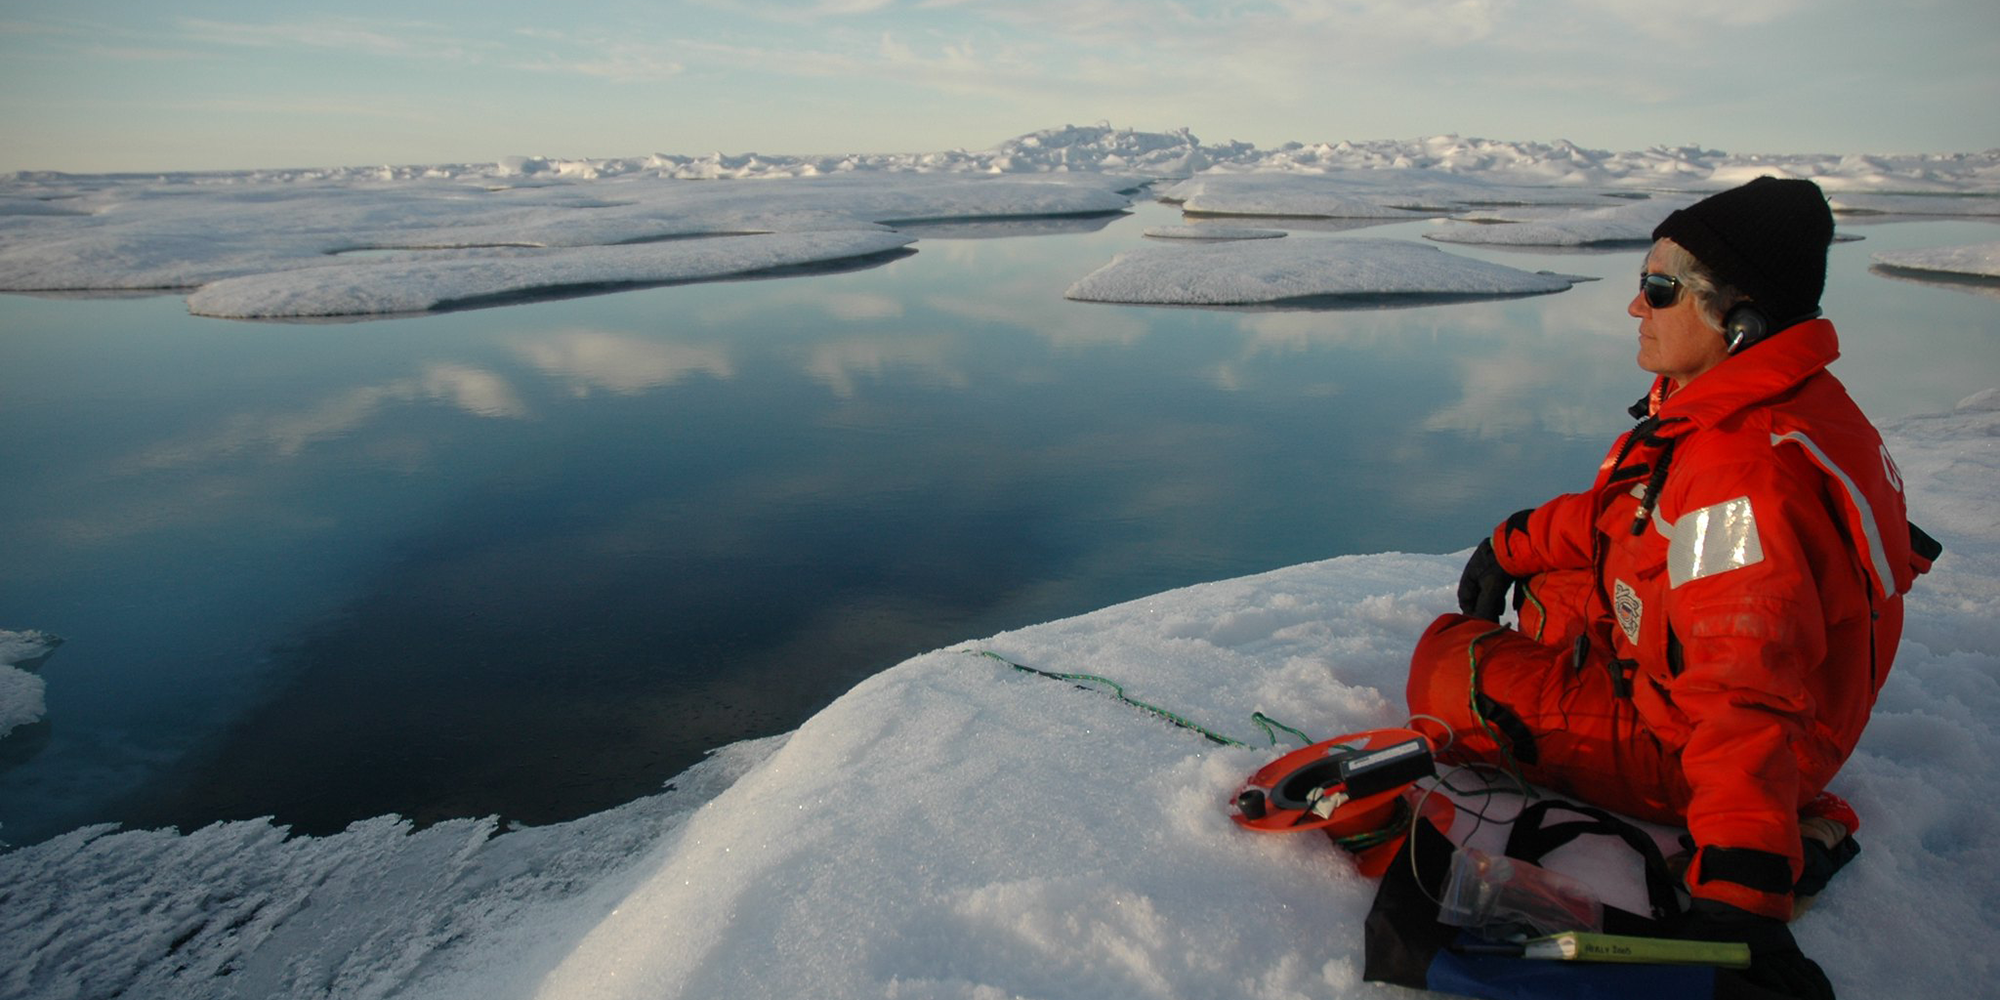 NOAA Listening to a hydrophone